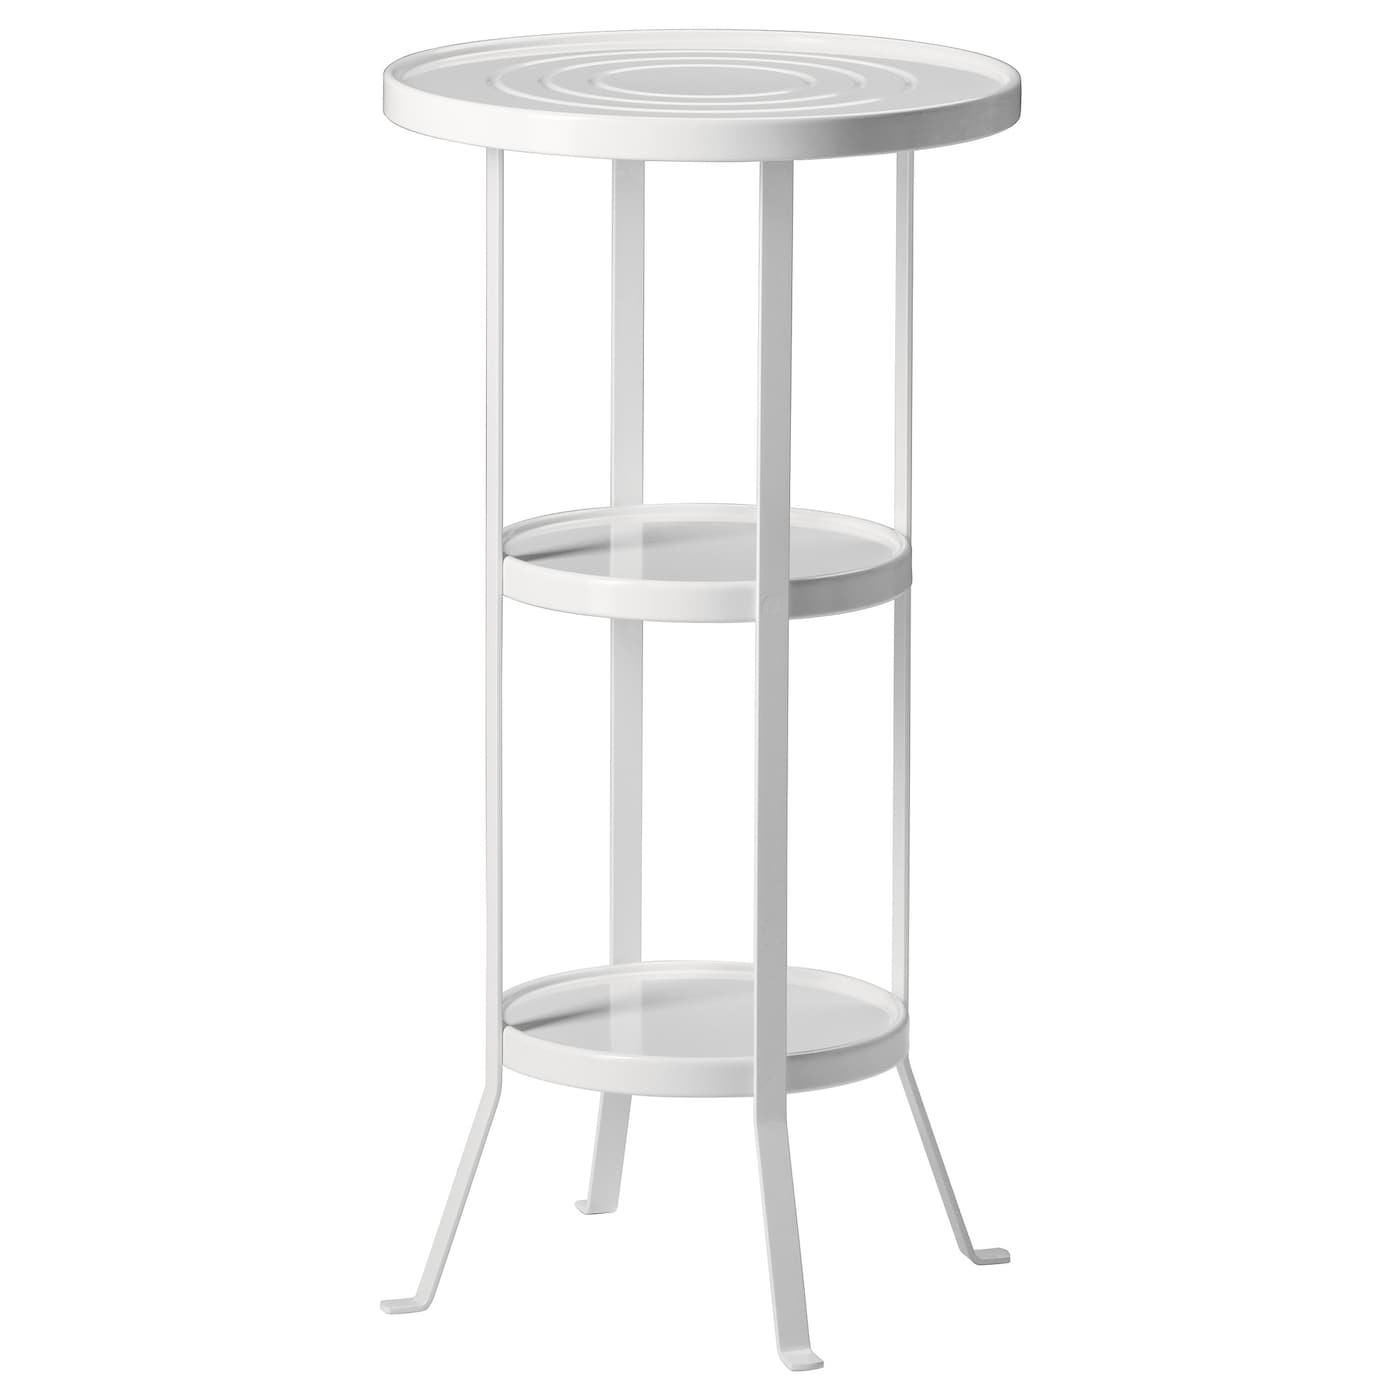 gunnern pedestal table white 38 cm ikea